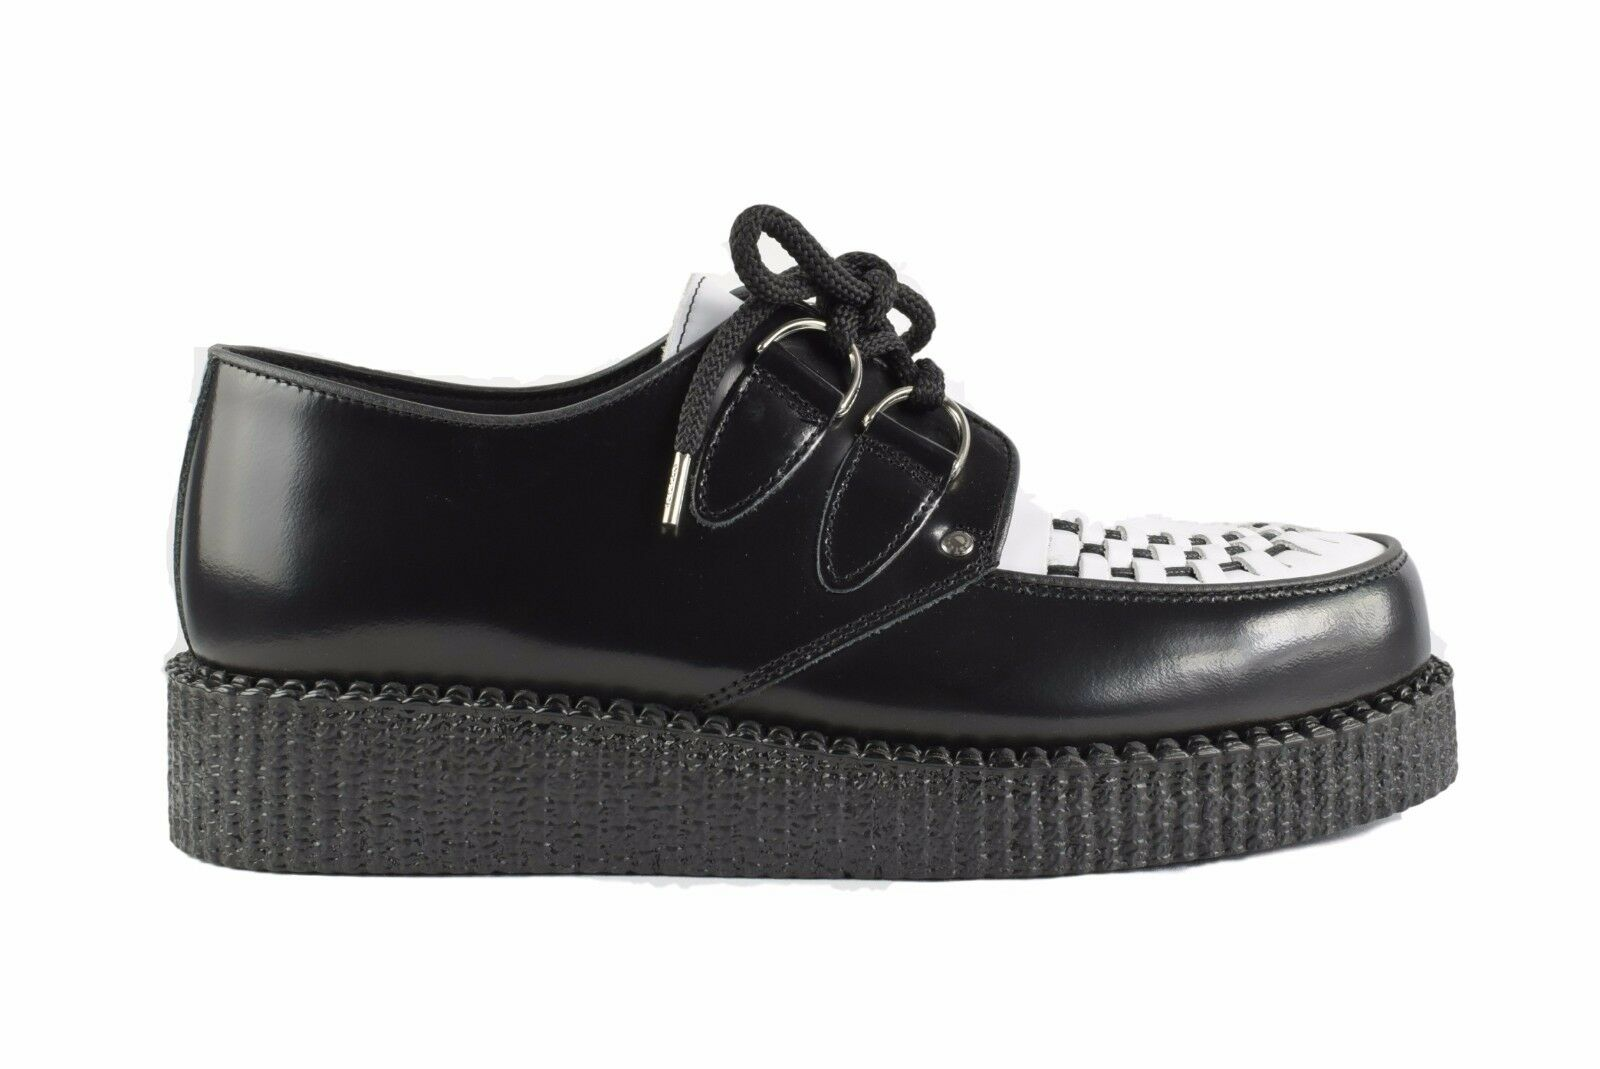 Steel Ground Schuhes schwarz WEISS Leder Creepers Low Sole D Ring Casual